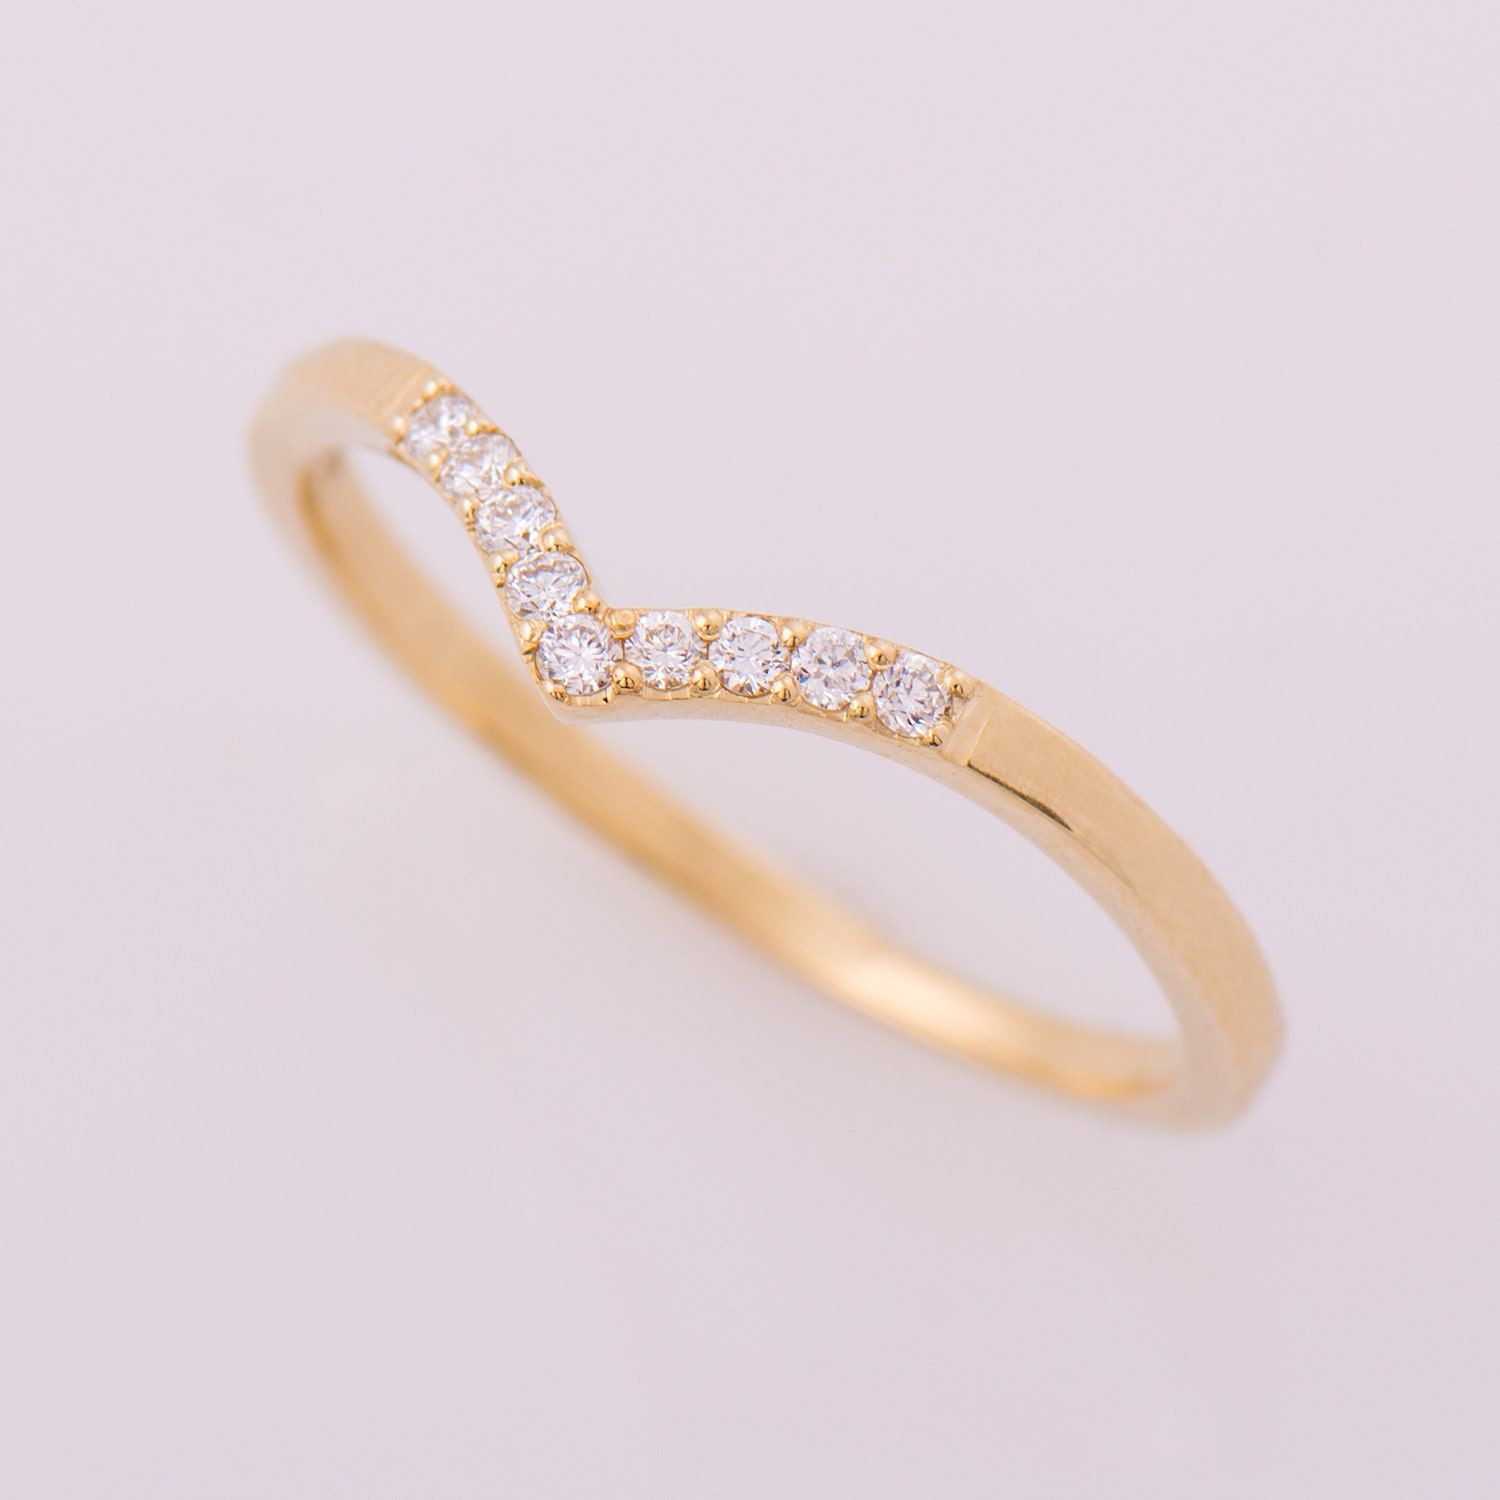 rings wedding ceremony ring amazing decoration and band curved